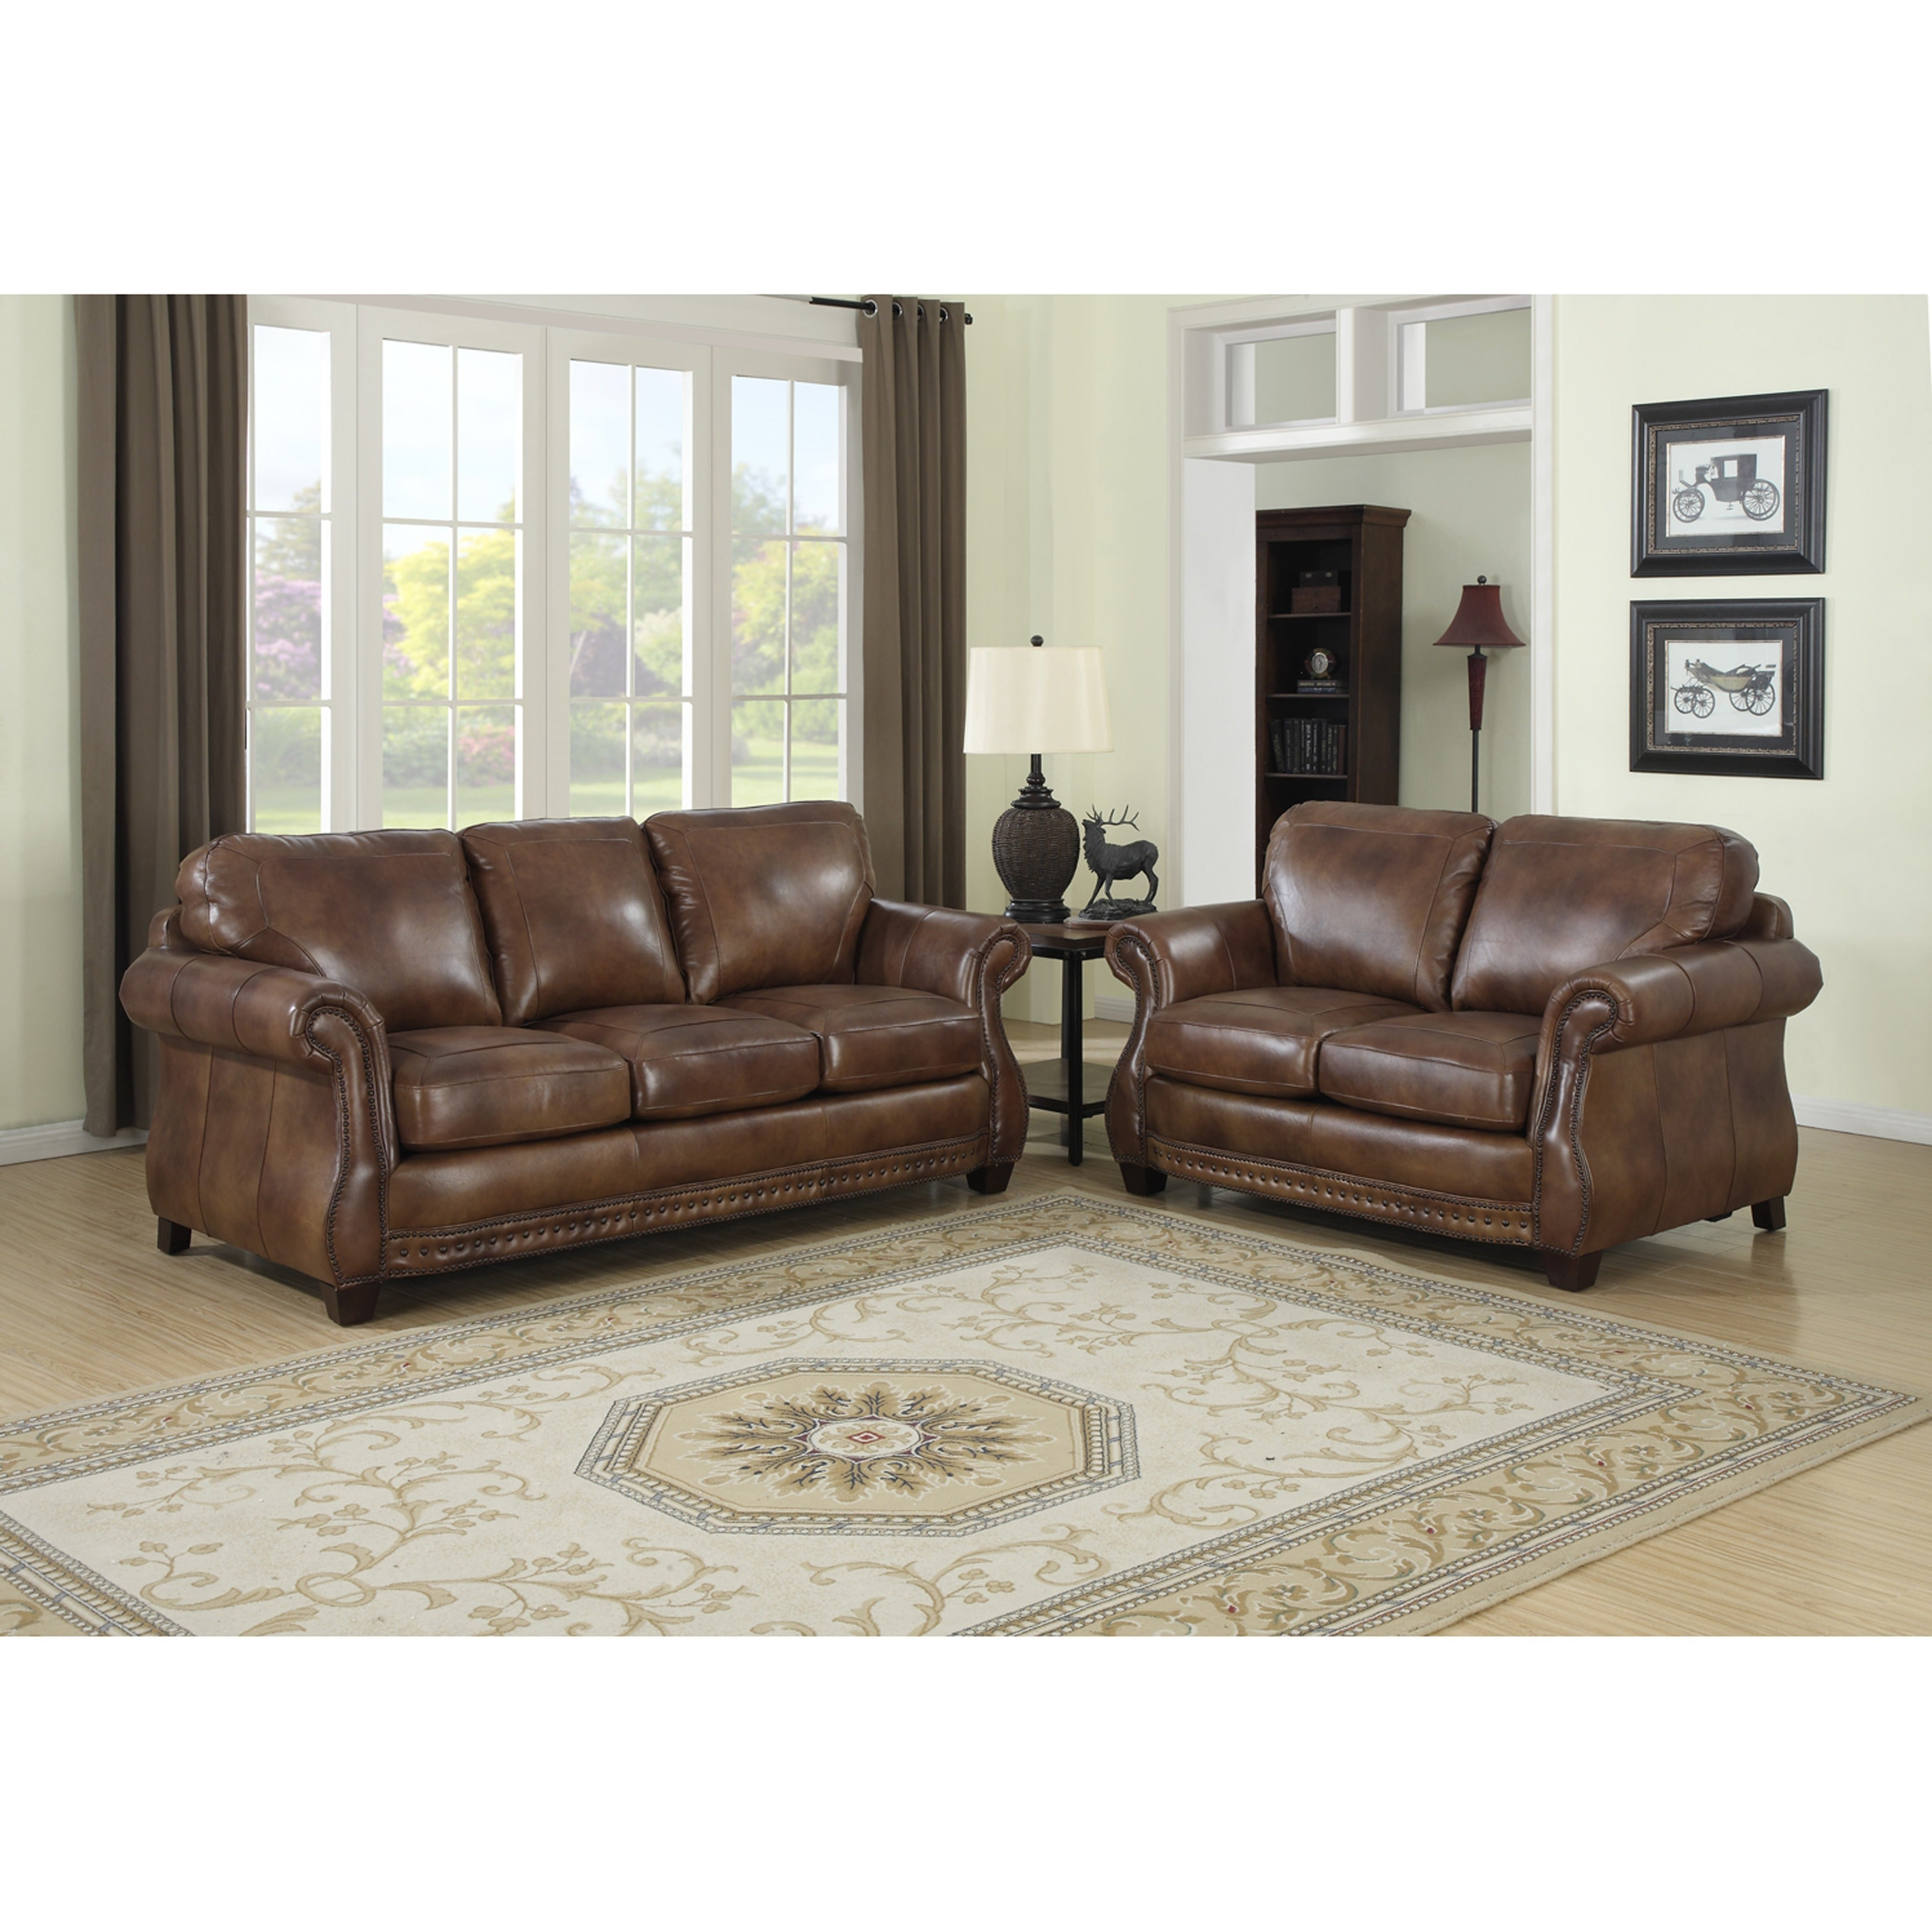 cognac sofa darby home co beglin cognac leather sofa reviews wayfair thesofa. Black Bedroom Furniture Sets. Home Design Ideas